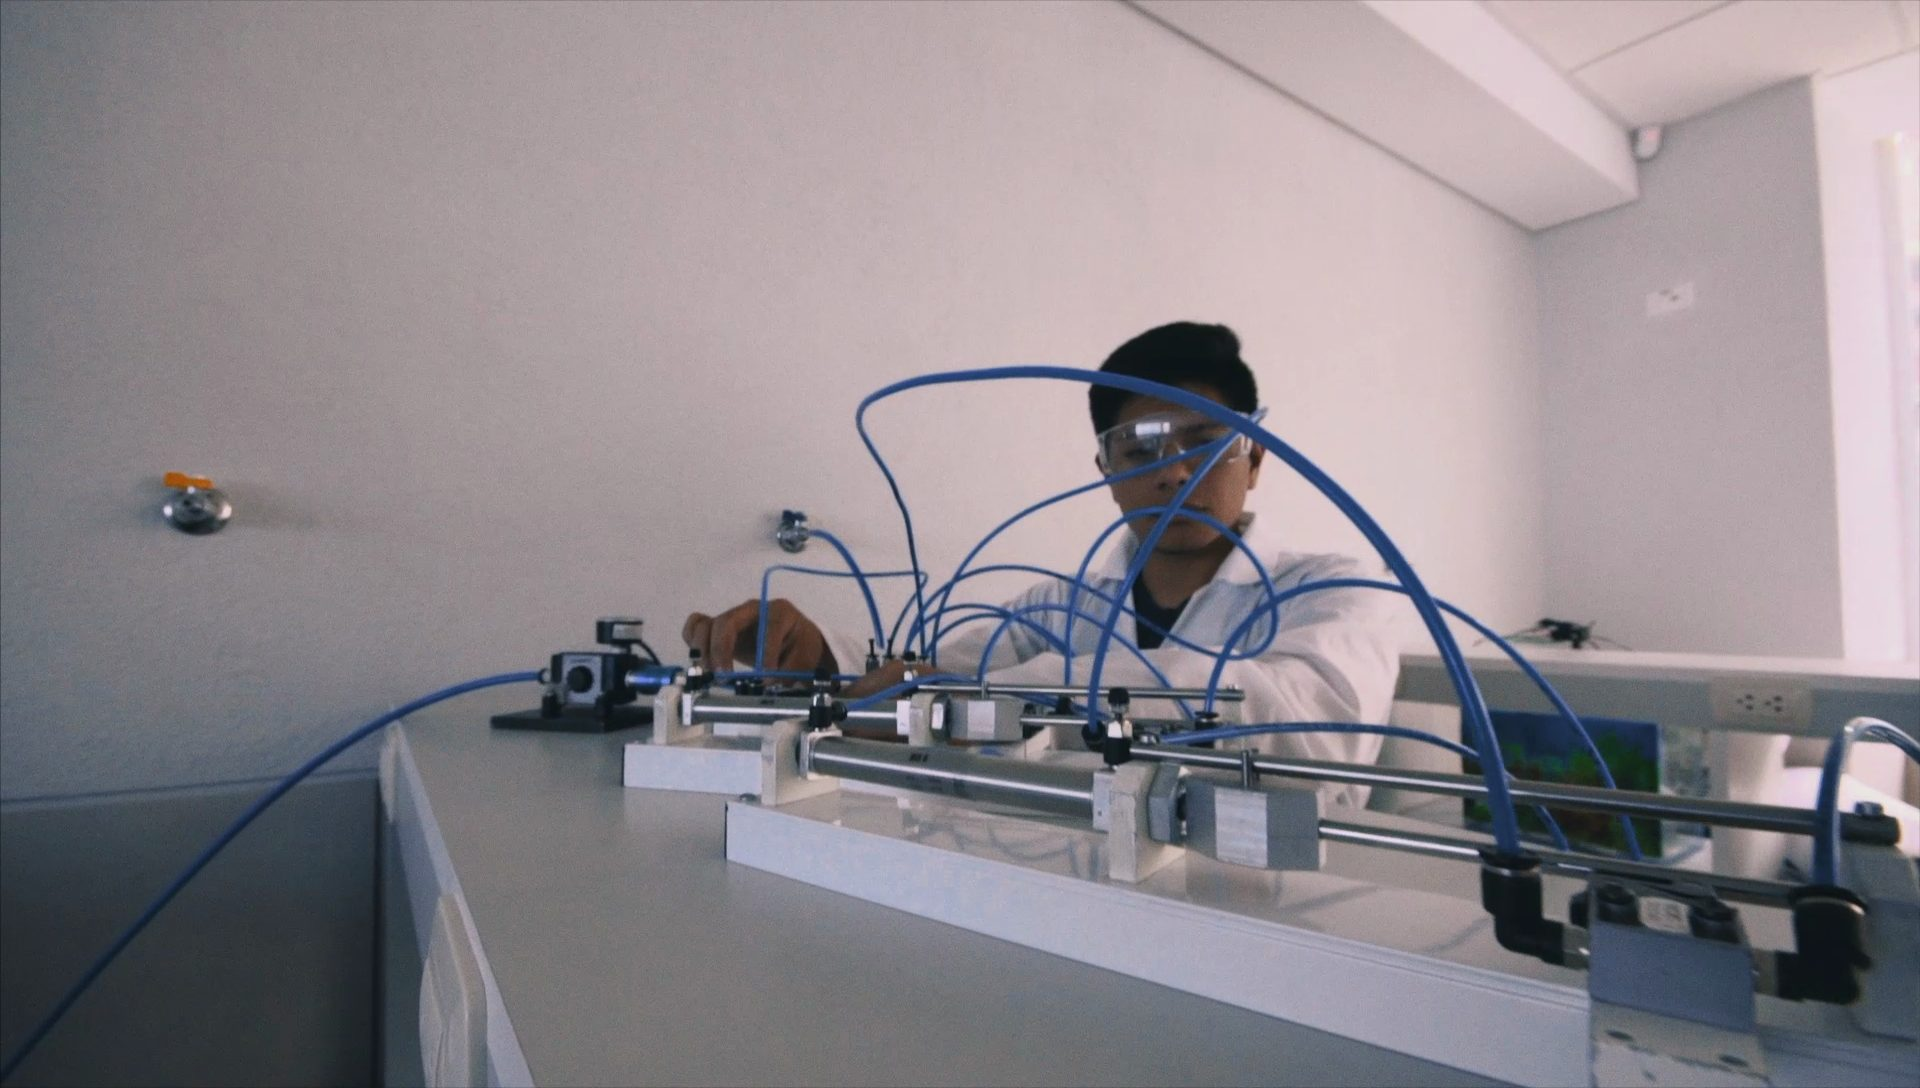 Student with pneumatic actuators